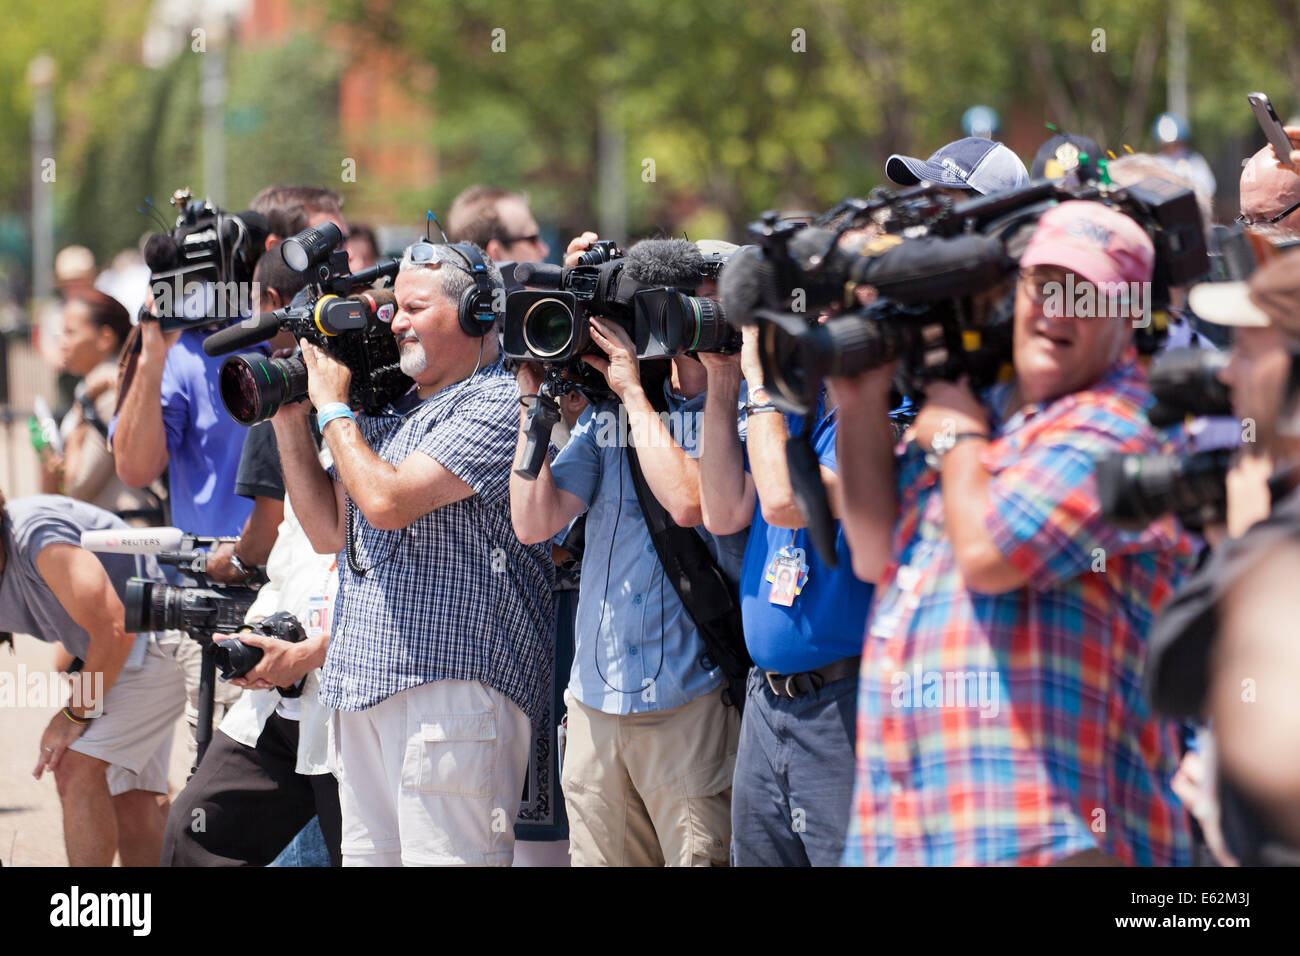 News cameramen covering an event - Washington, DC USA - Stock Image